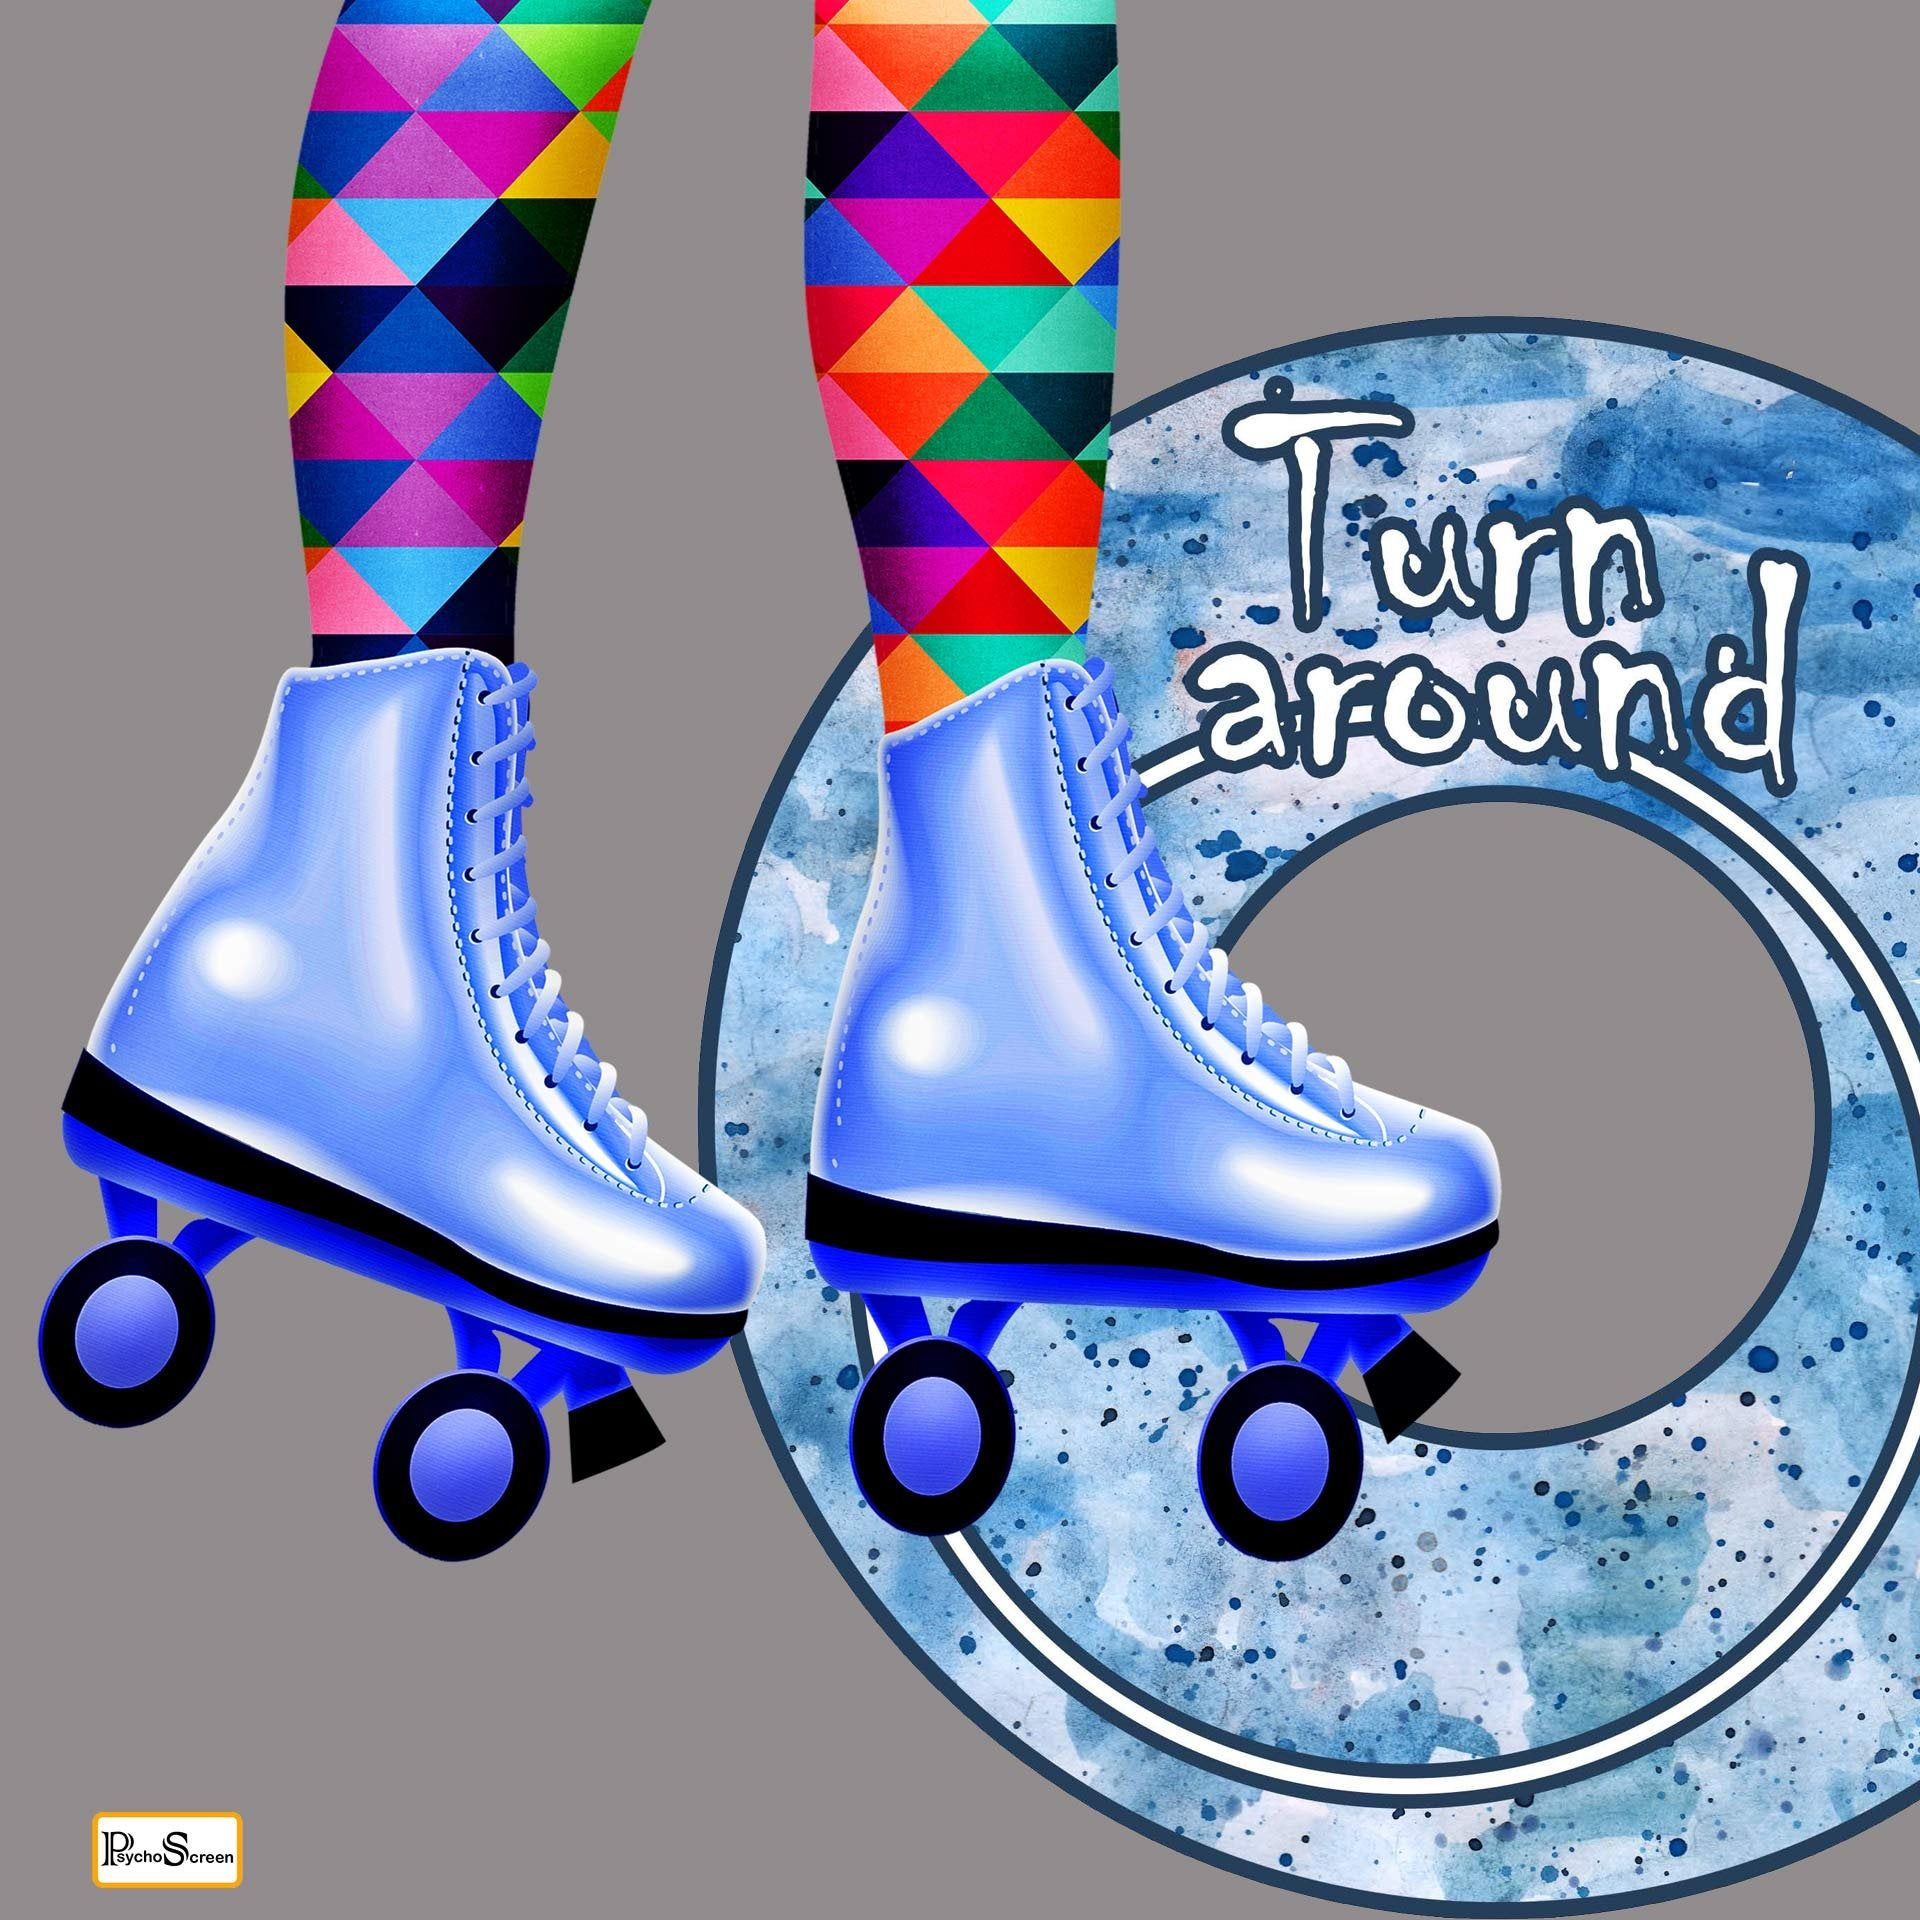 Funny Rings for outdoor game, printable for Roller skates